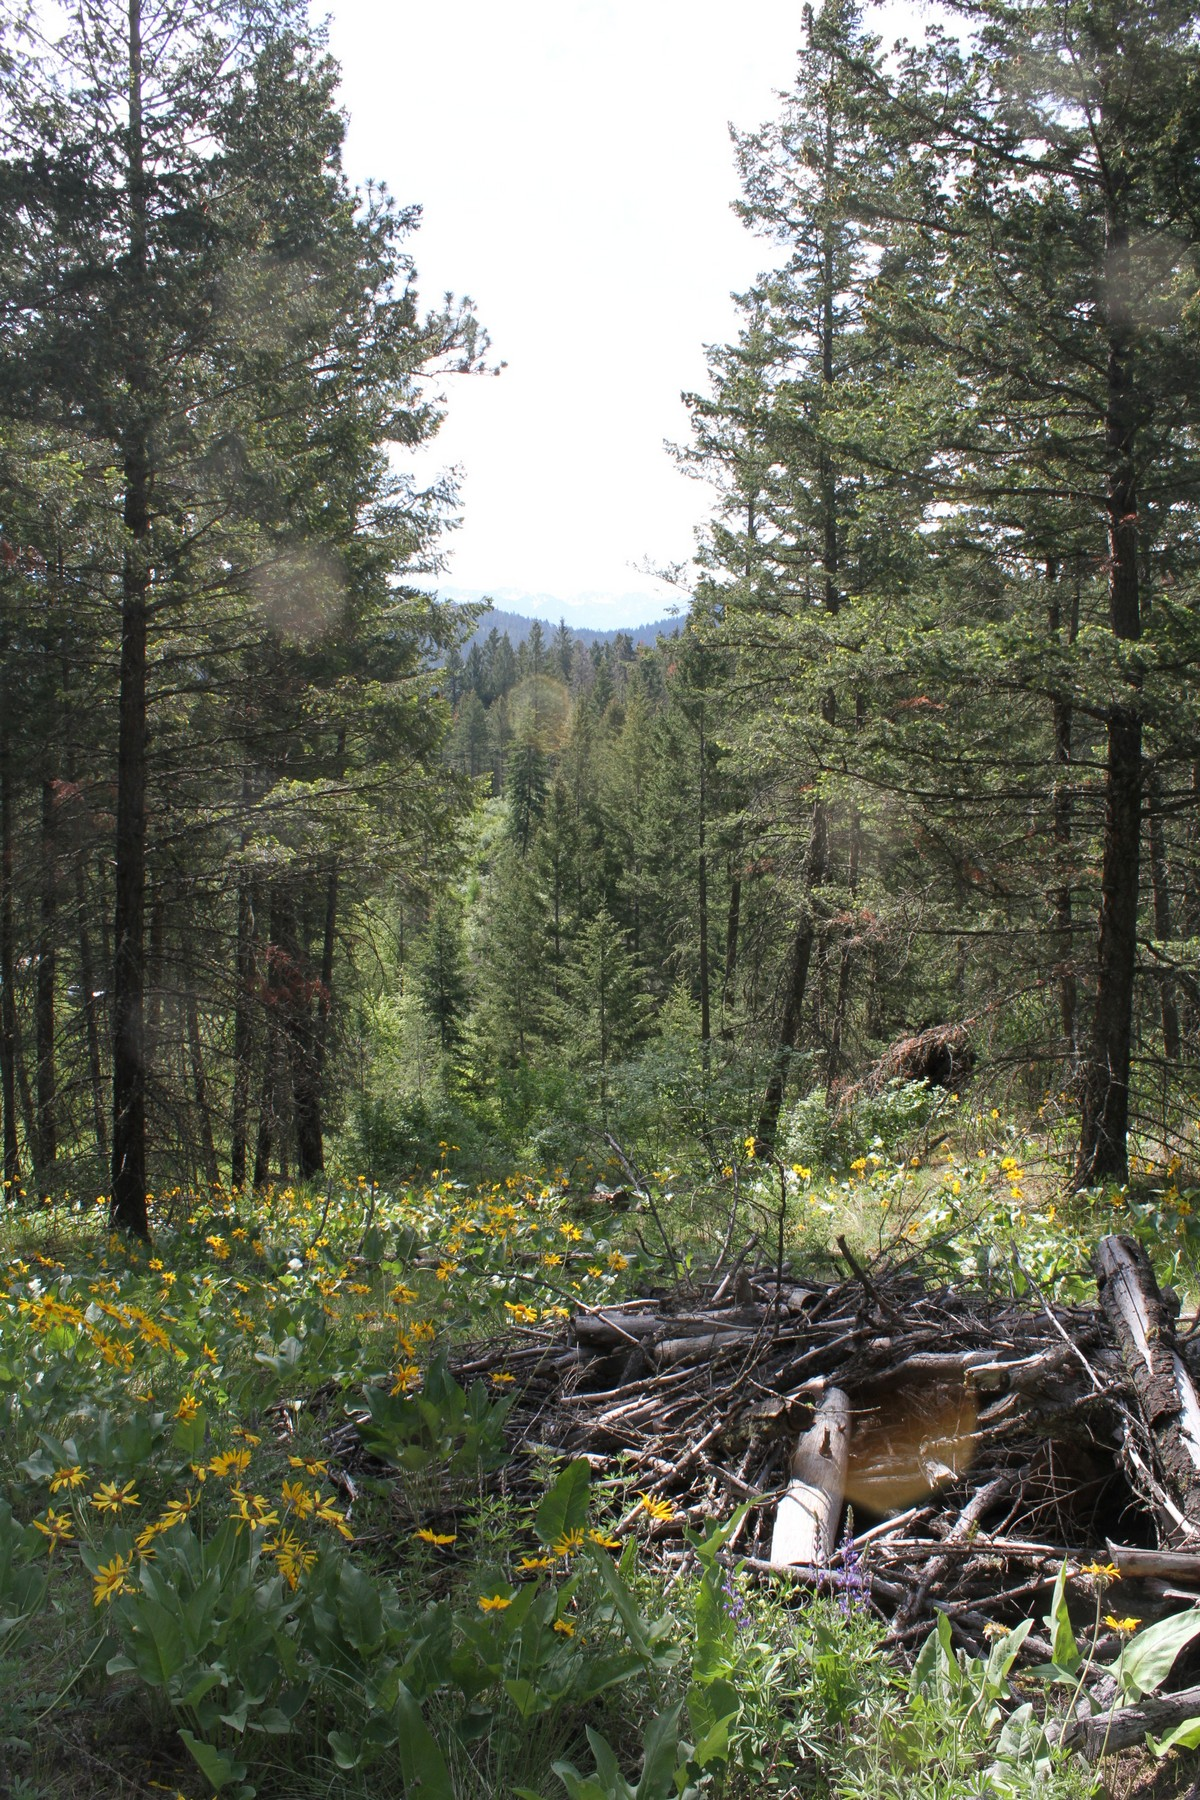 Land for Sale at White Swan Road Nhn White Swan Rd Polson, Montana 59860 United States